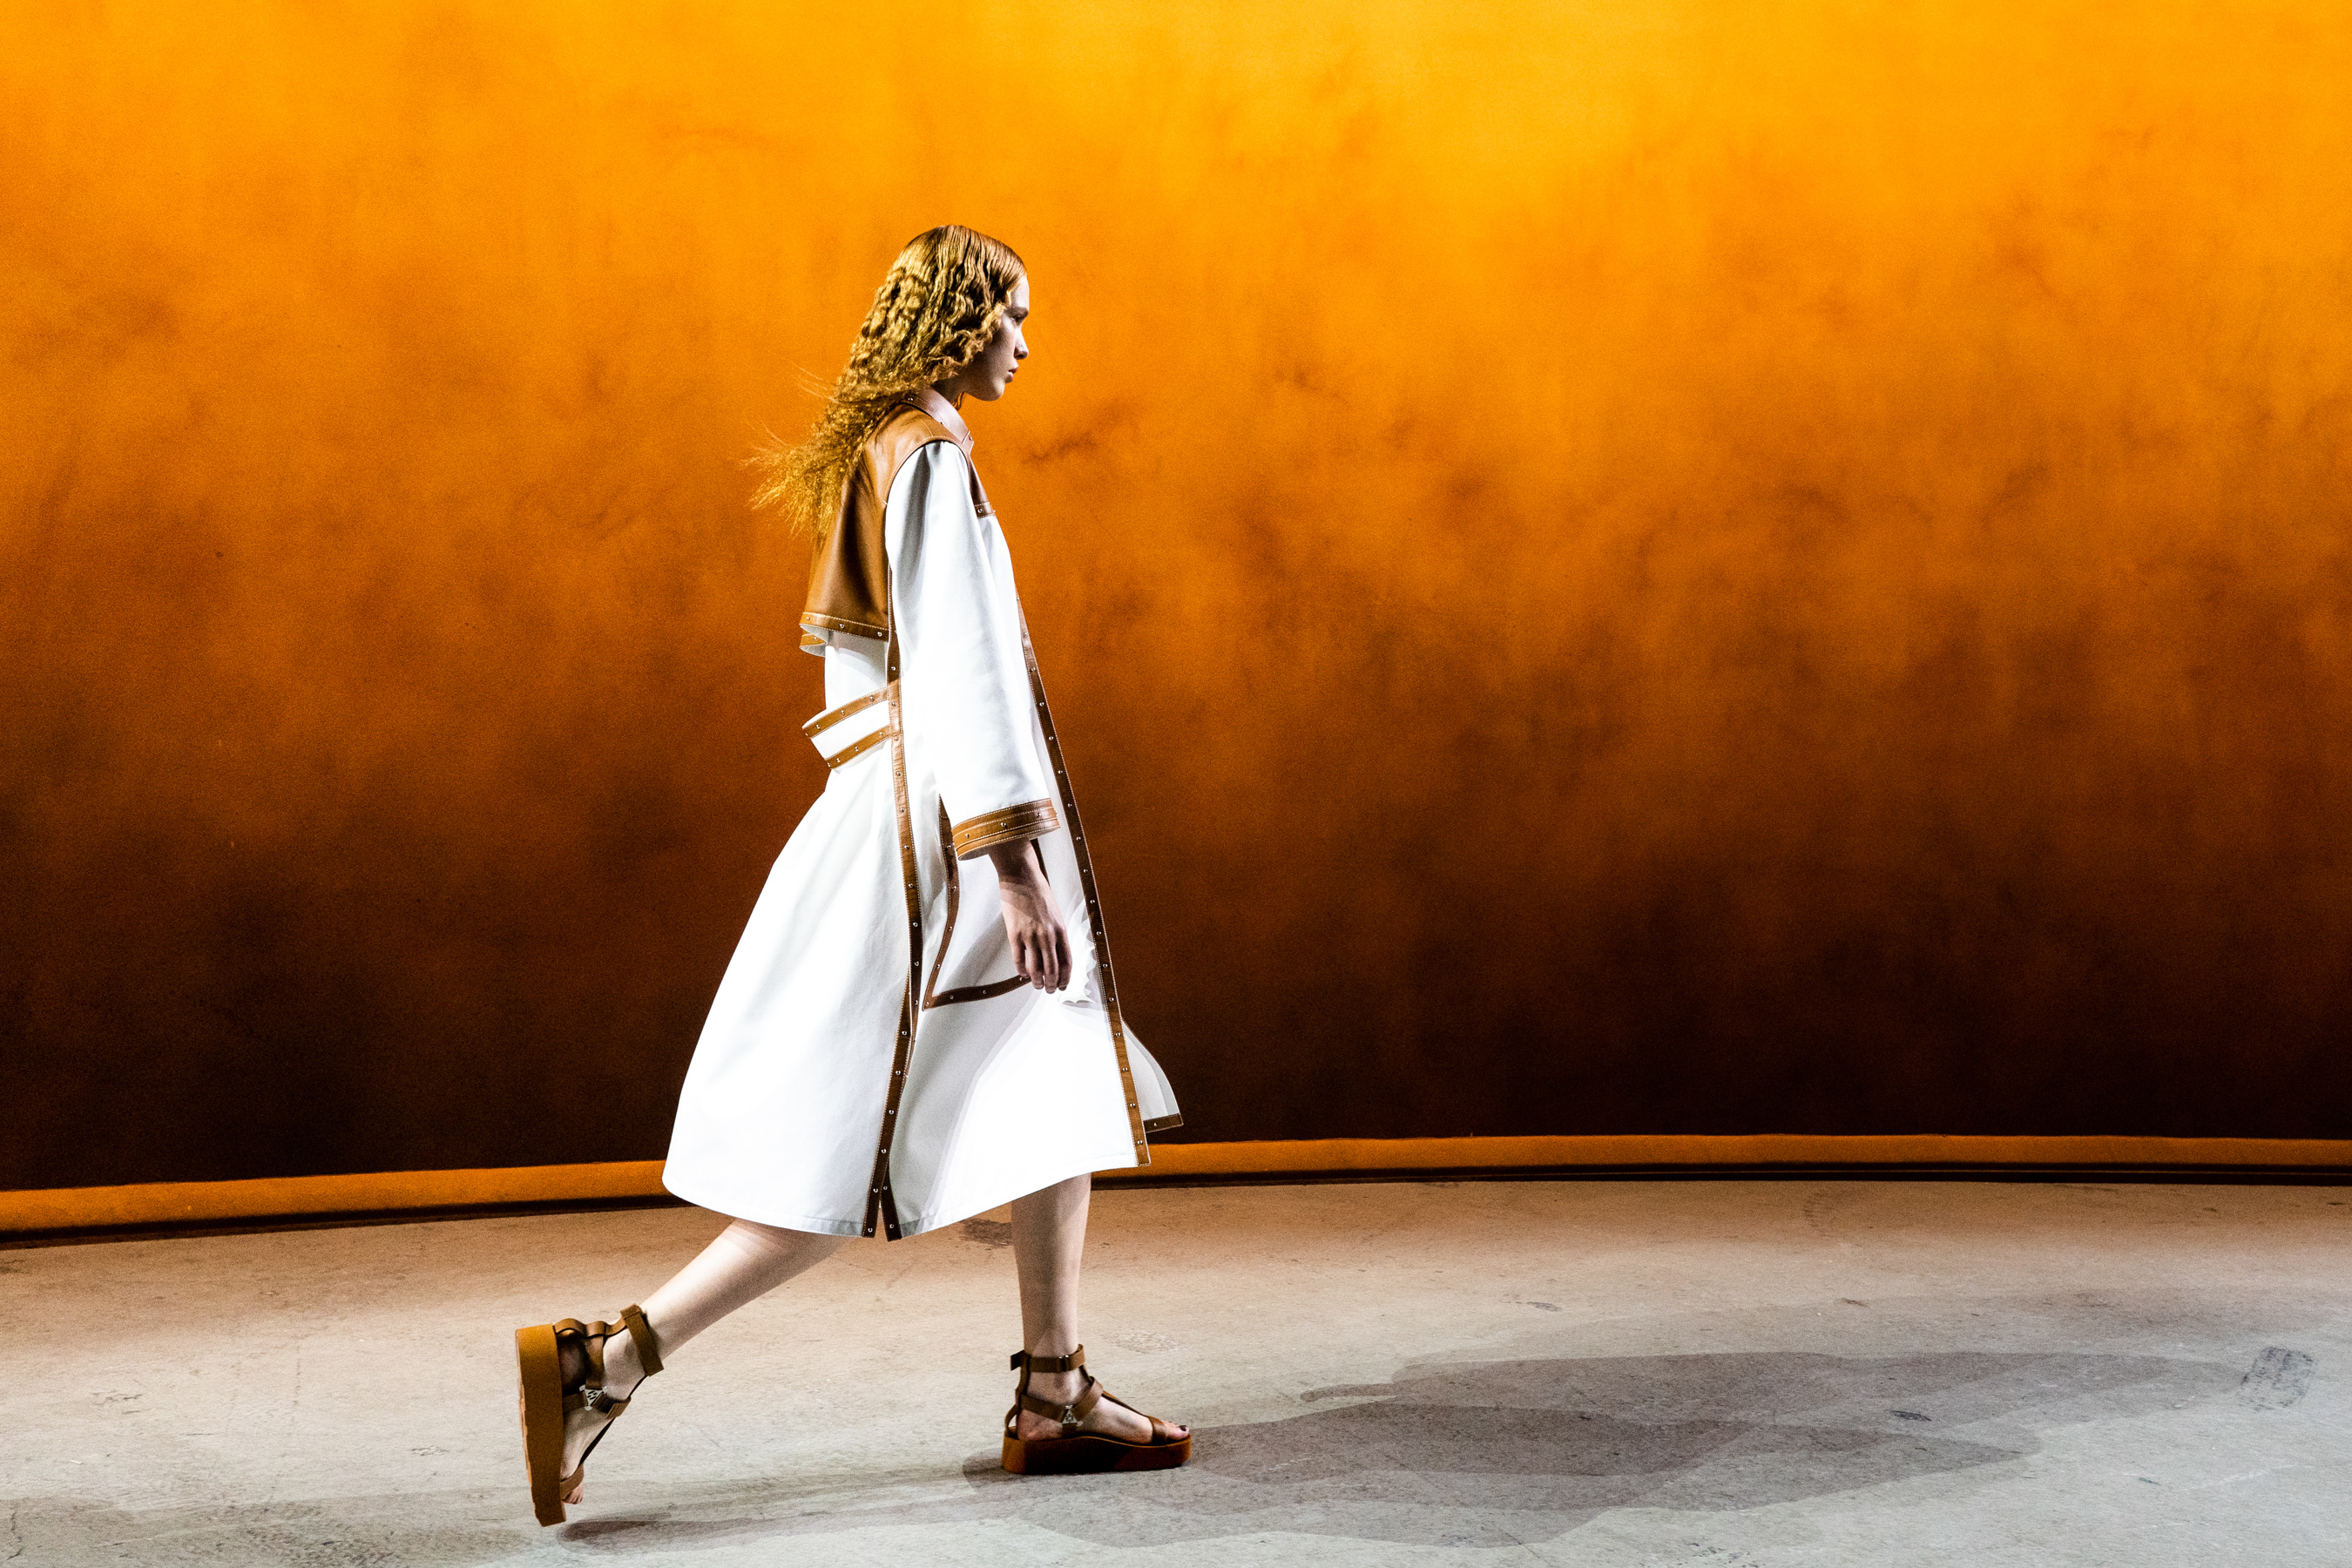 Hermes Spring 2022 Atmosphere Fashion Show